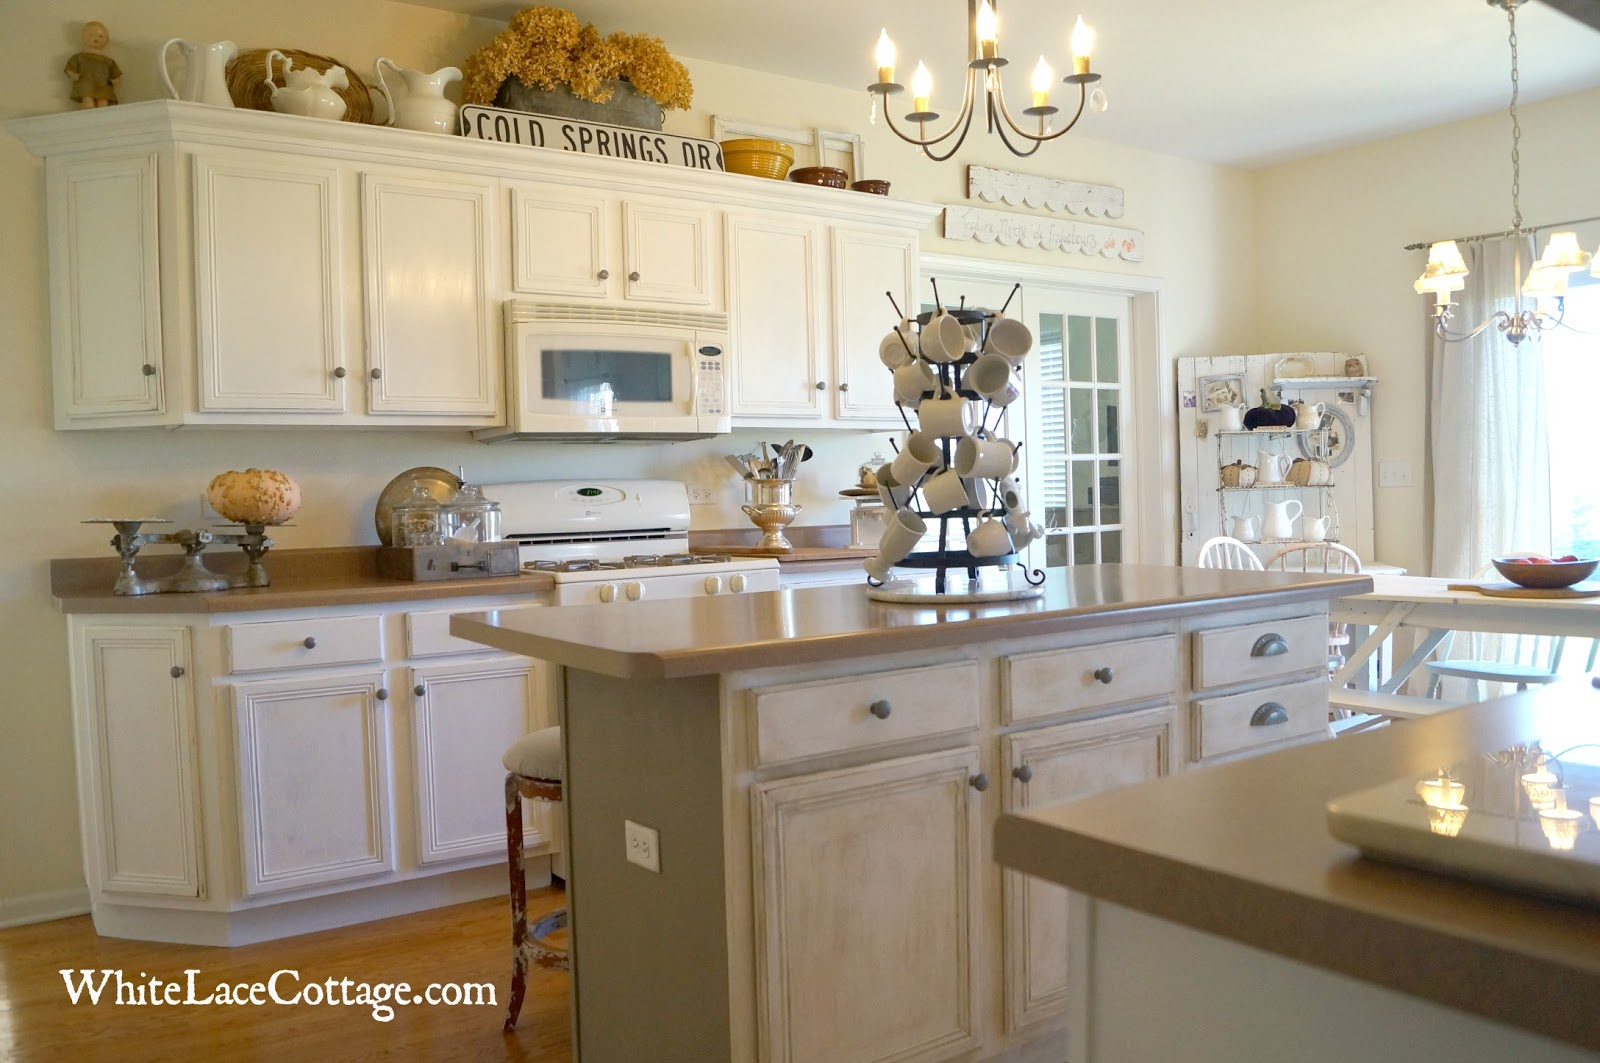 Over Cabinet Decor New Changes With A Little Coco White Lace Cottage